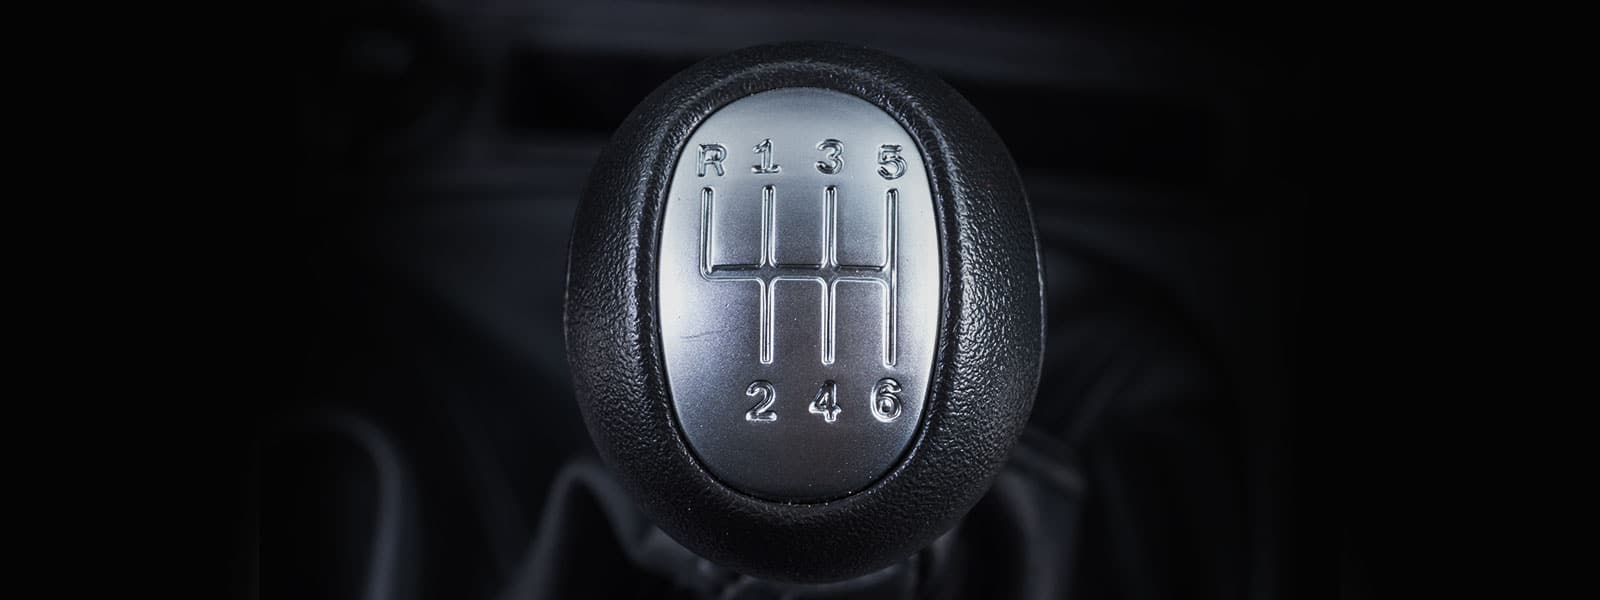 6 Speed Transmission